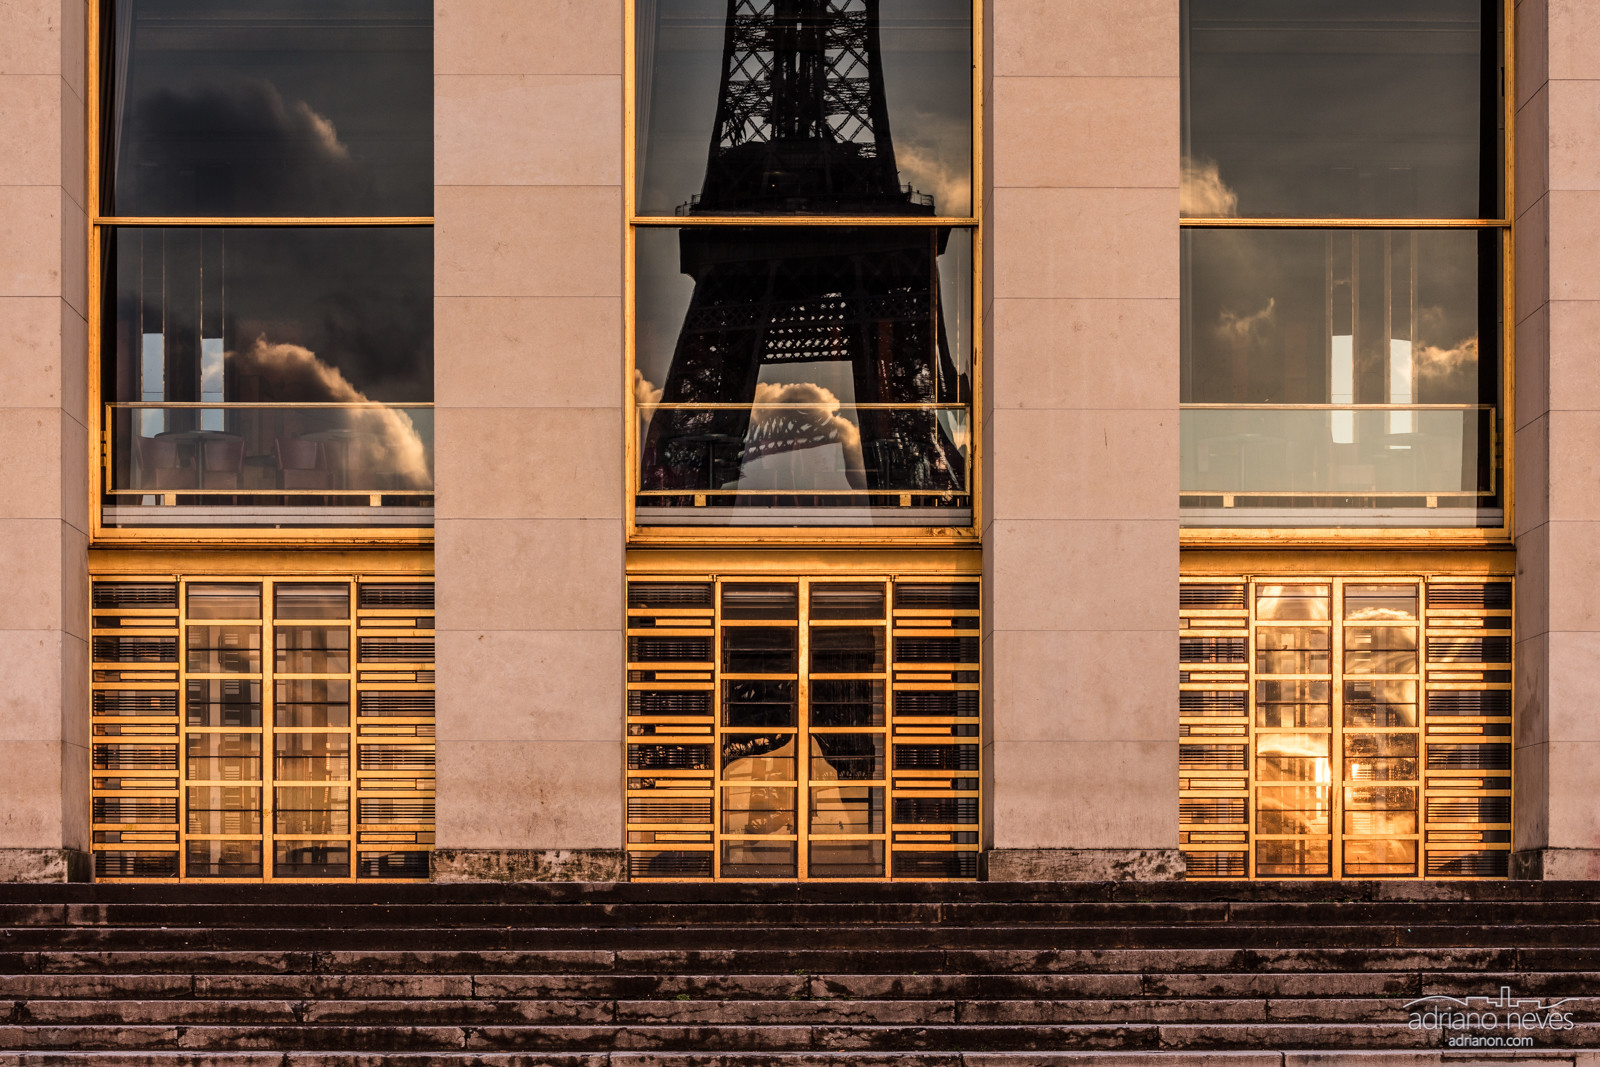 Early morning view of gilded facade at the Trocadero monument, Paris, France, and the Eiffel Tower reflected in the windows.